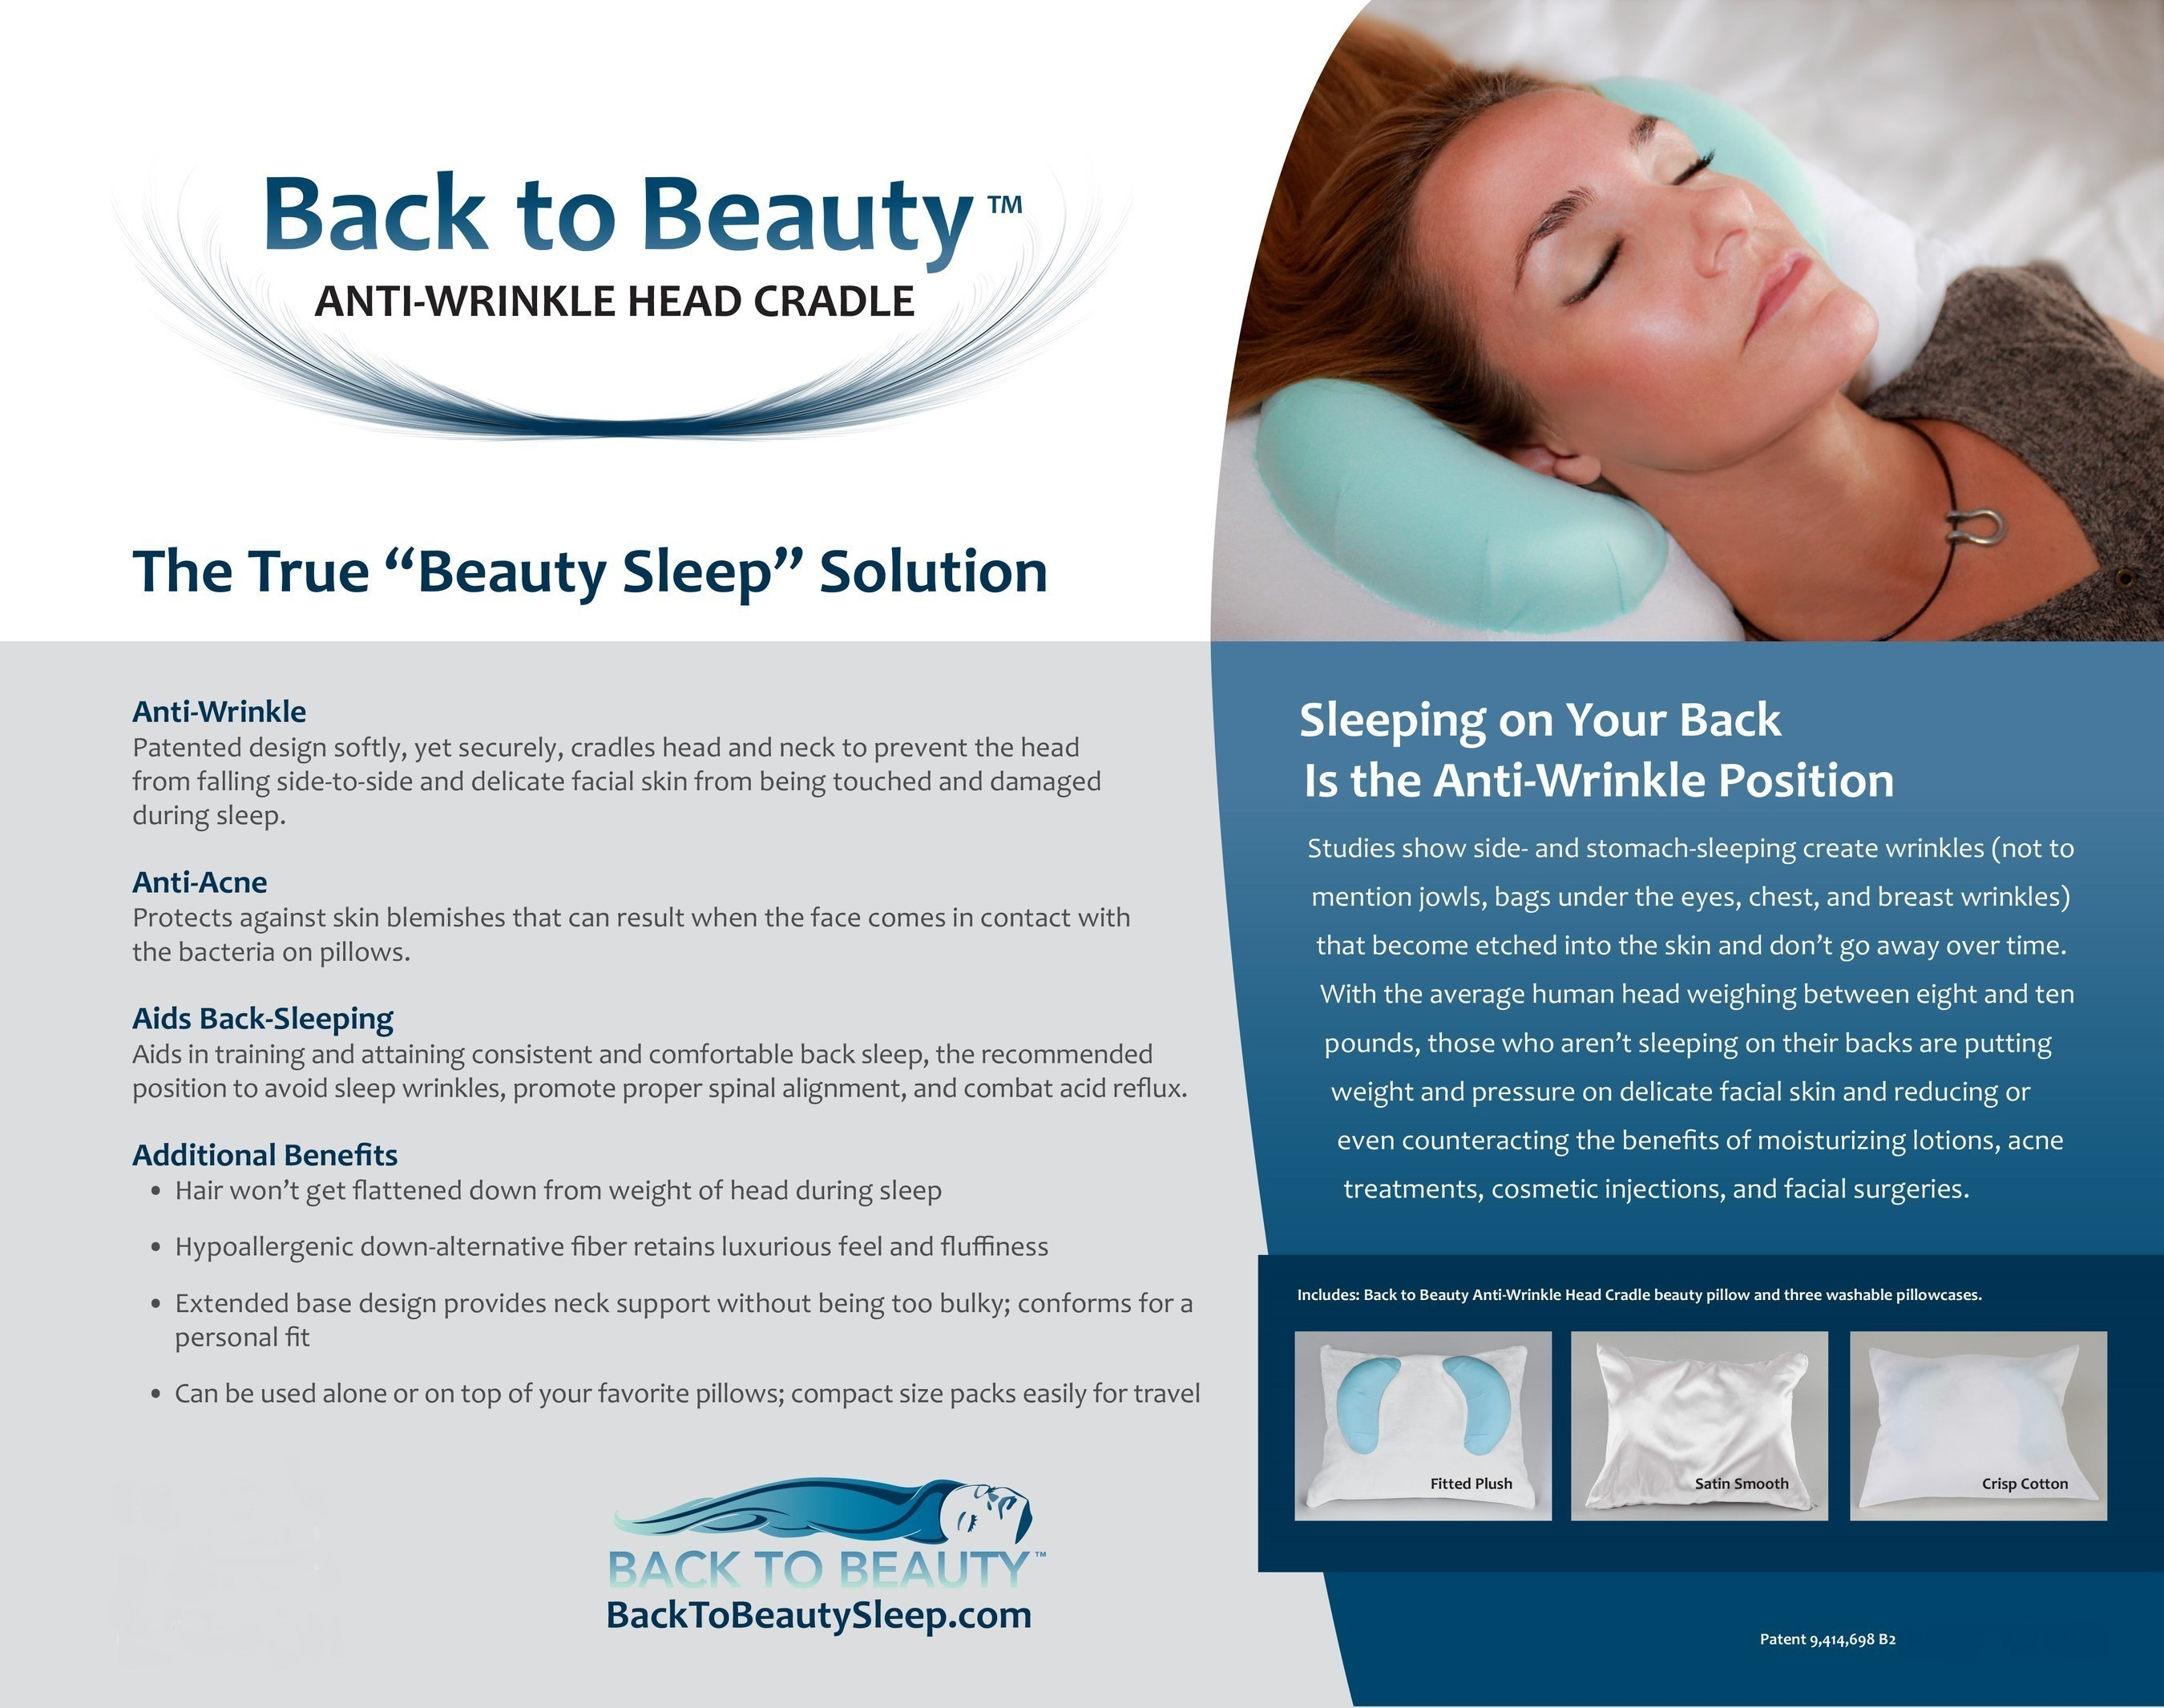 The Back to Beauty Anti-Wrinkle Head Cradle - True 'beauty sleep' is finally attainable. With the human head weighing between 8-10 pounds, it's no wonder studies show sleeping on your stomach or side creates sleep wrinkles - not to mention jowls, bags under the eyes, neck, chest and breast wrinkles - that become etched into the face and won't go away over time. The good news? The Back to Beauty Anti-Wrinkle Head Cradle beauty pillow's patented design softly, yet securely, cradles [...]